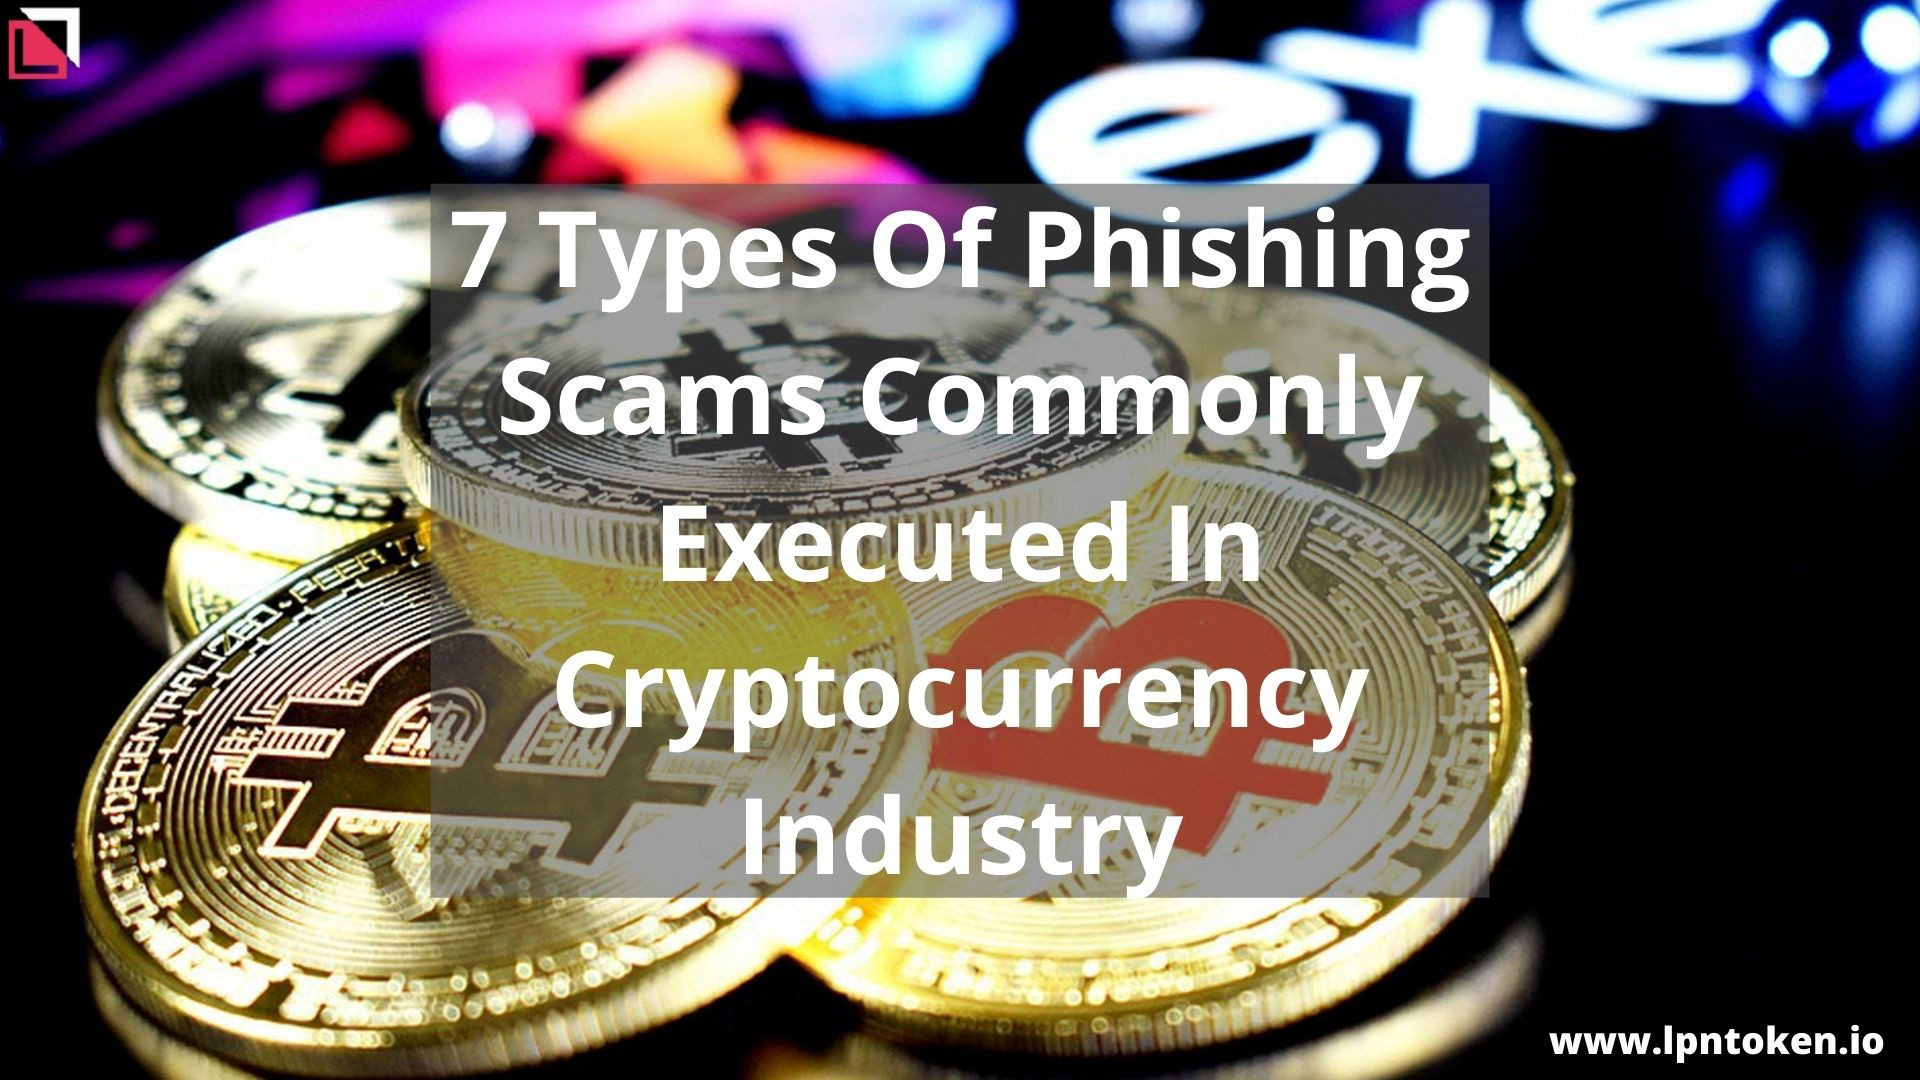 7 Types Of Phishing Scams Commonly Executed In Cryptocurrency Industry   lpntoken.io